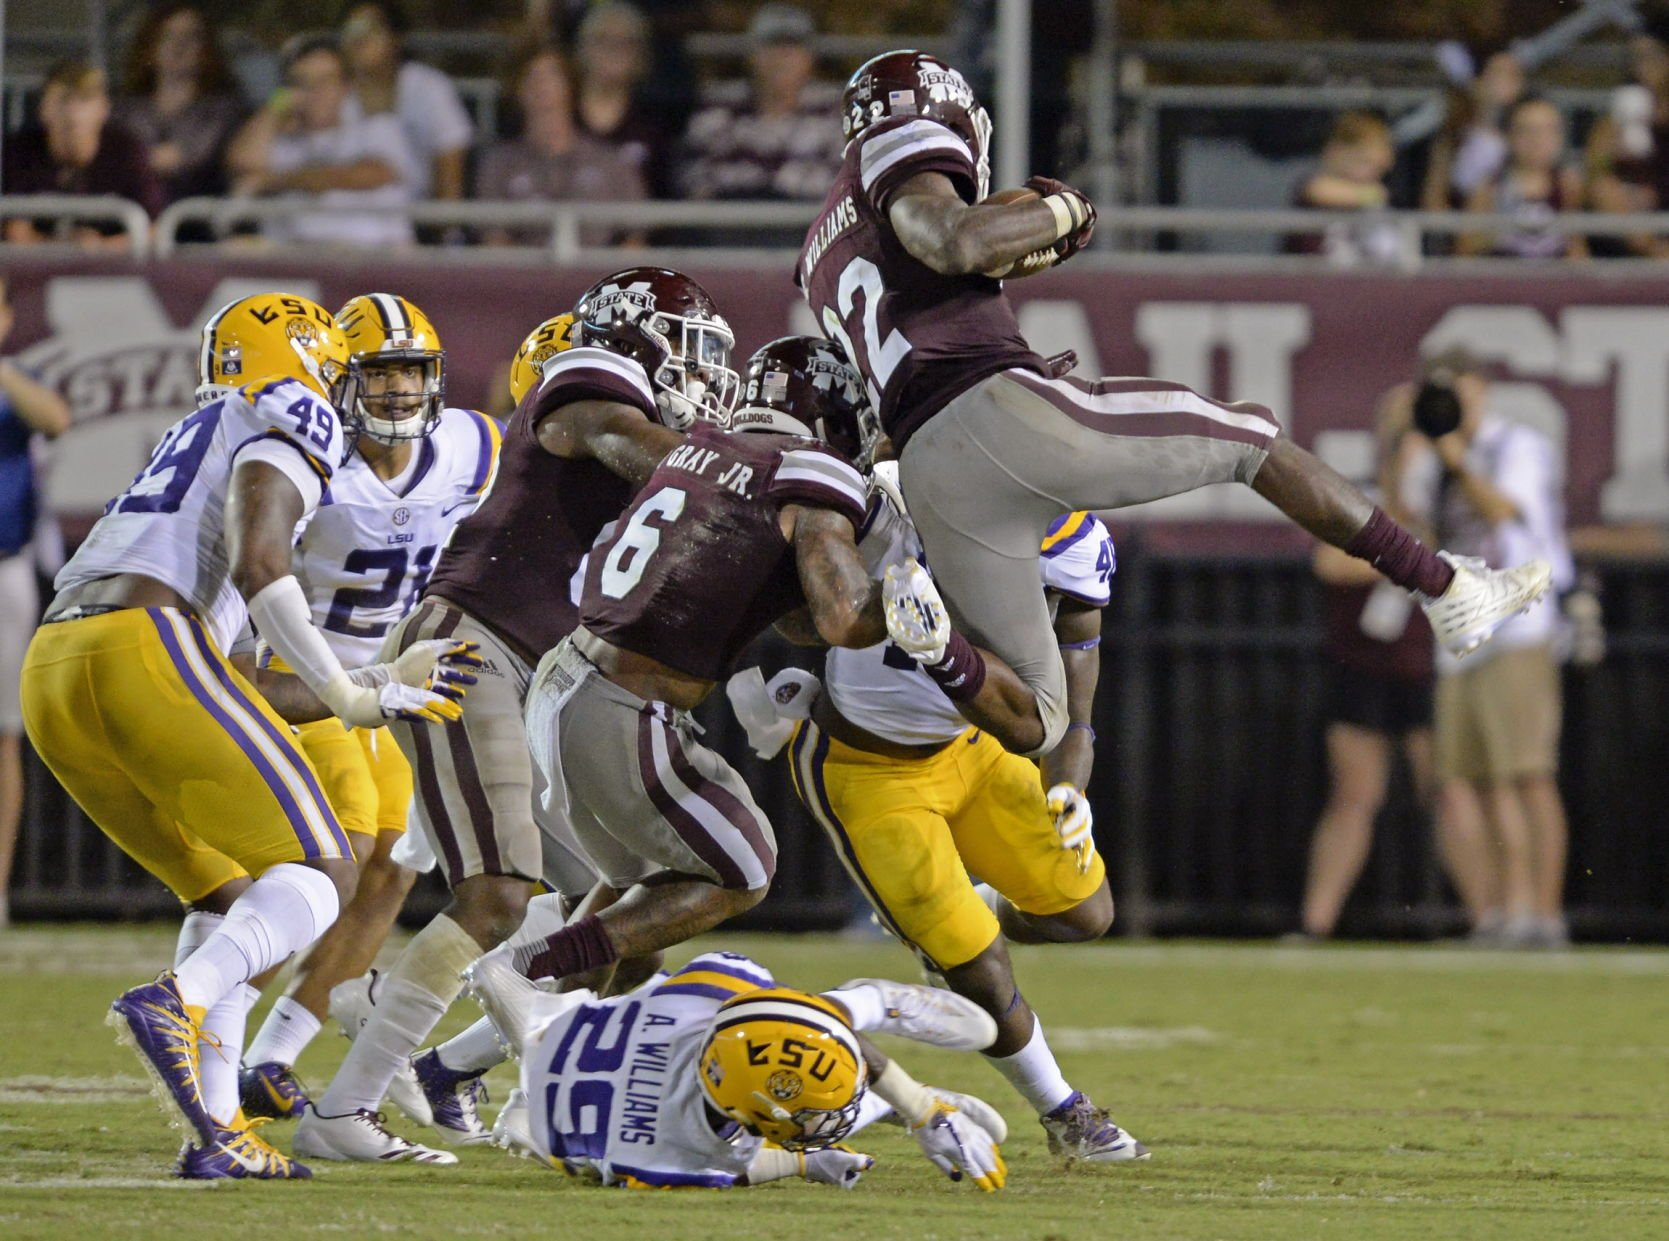 LSU's Orgeron: RB Guice will not play vs. Syracuse